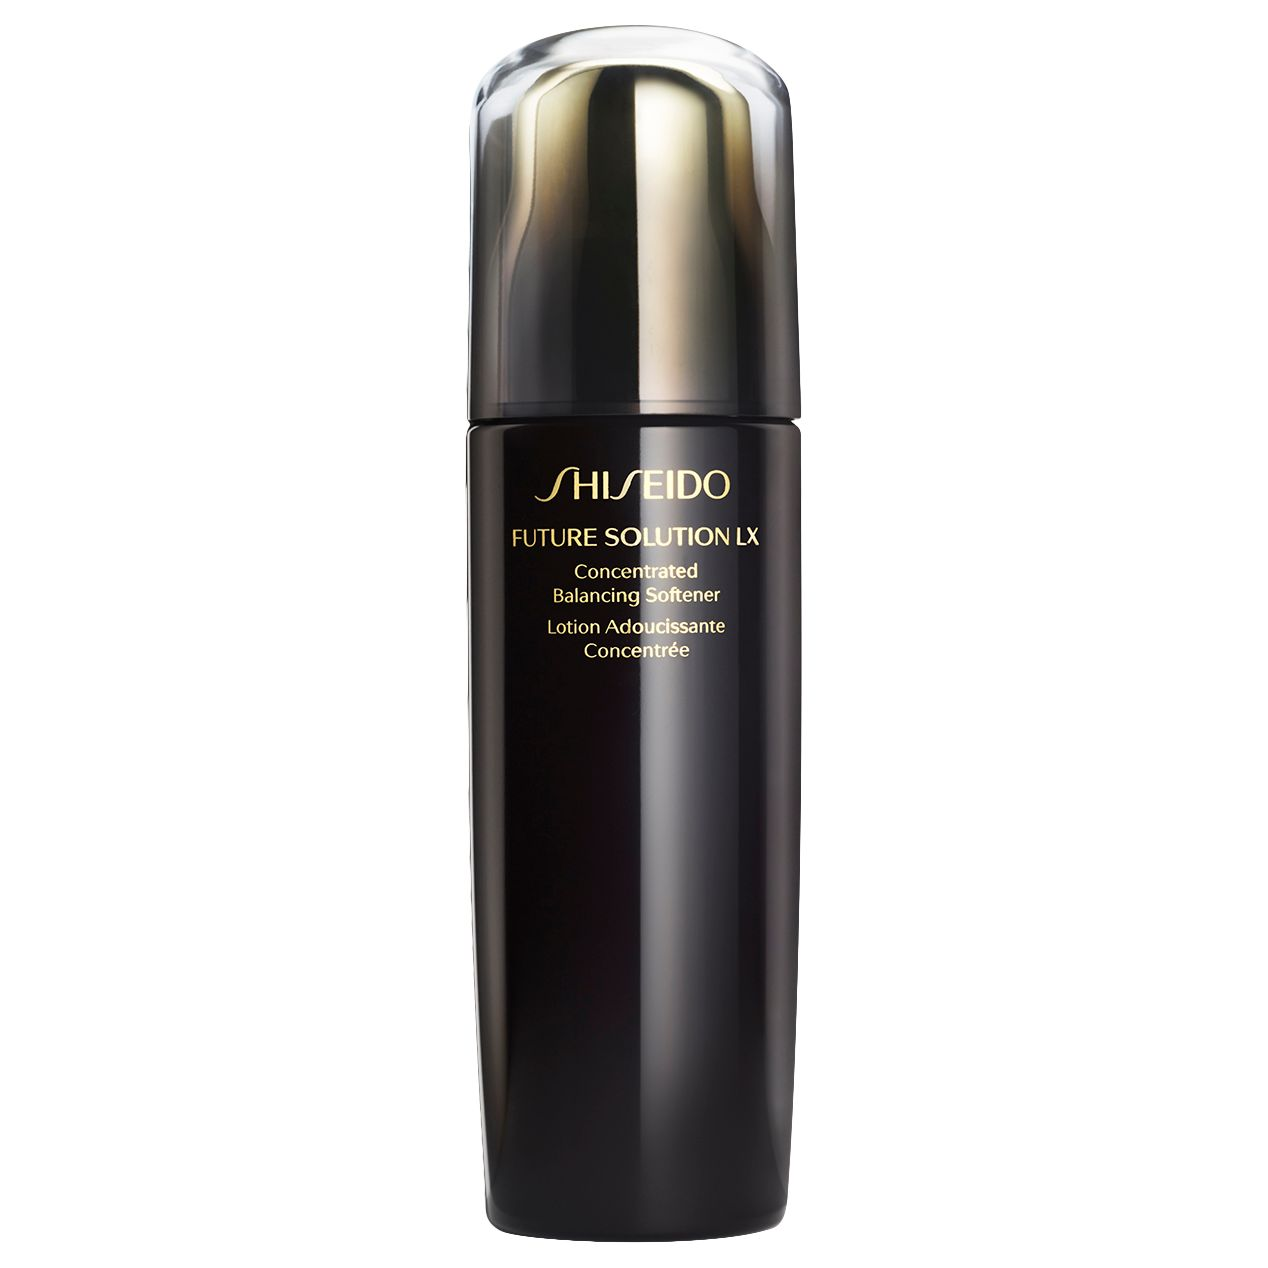 Shiseido Shiseido Future Solution LX Concentrated Balancing Softener, 170ml